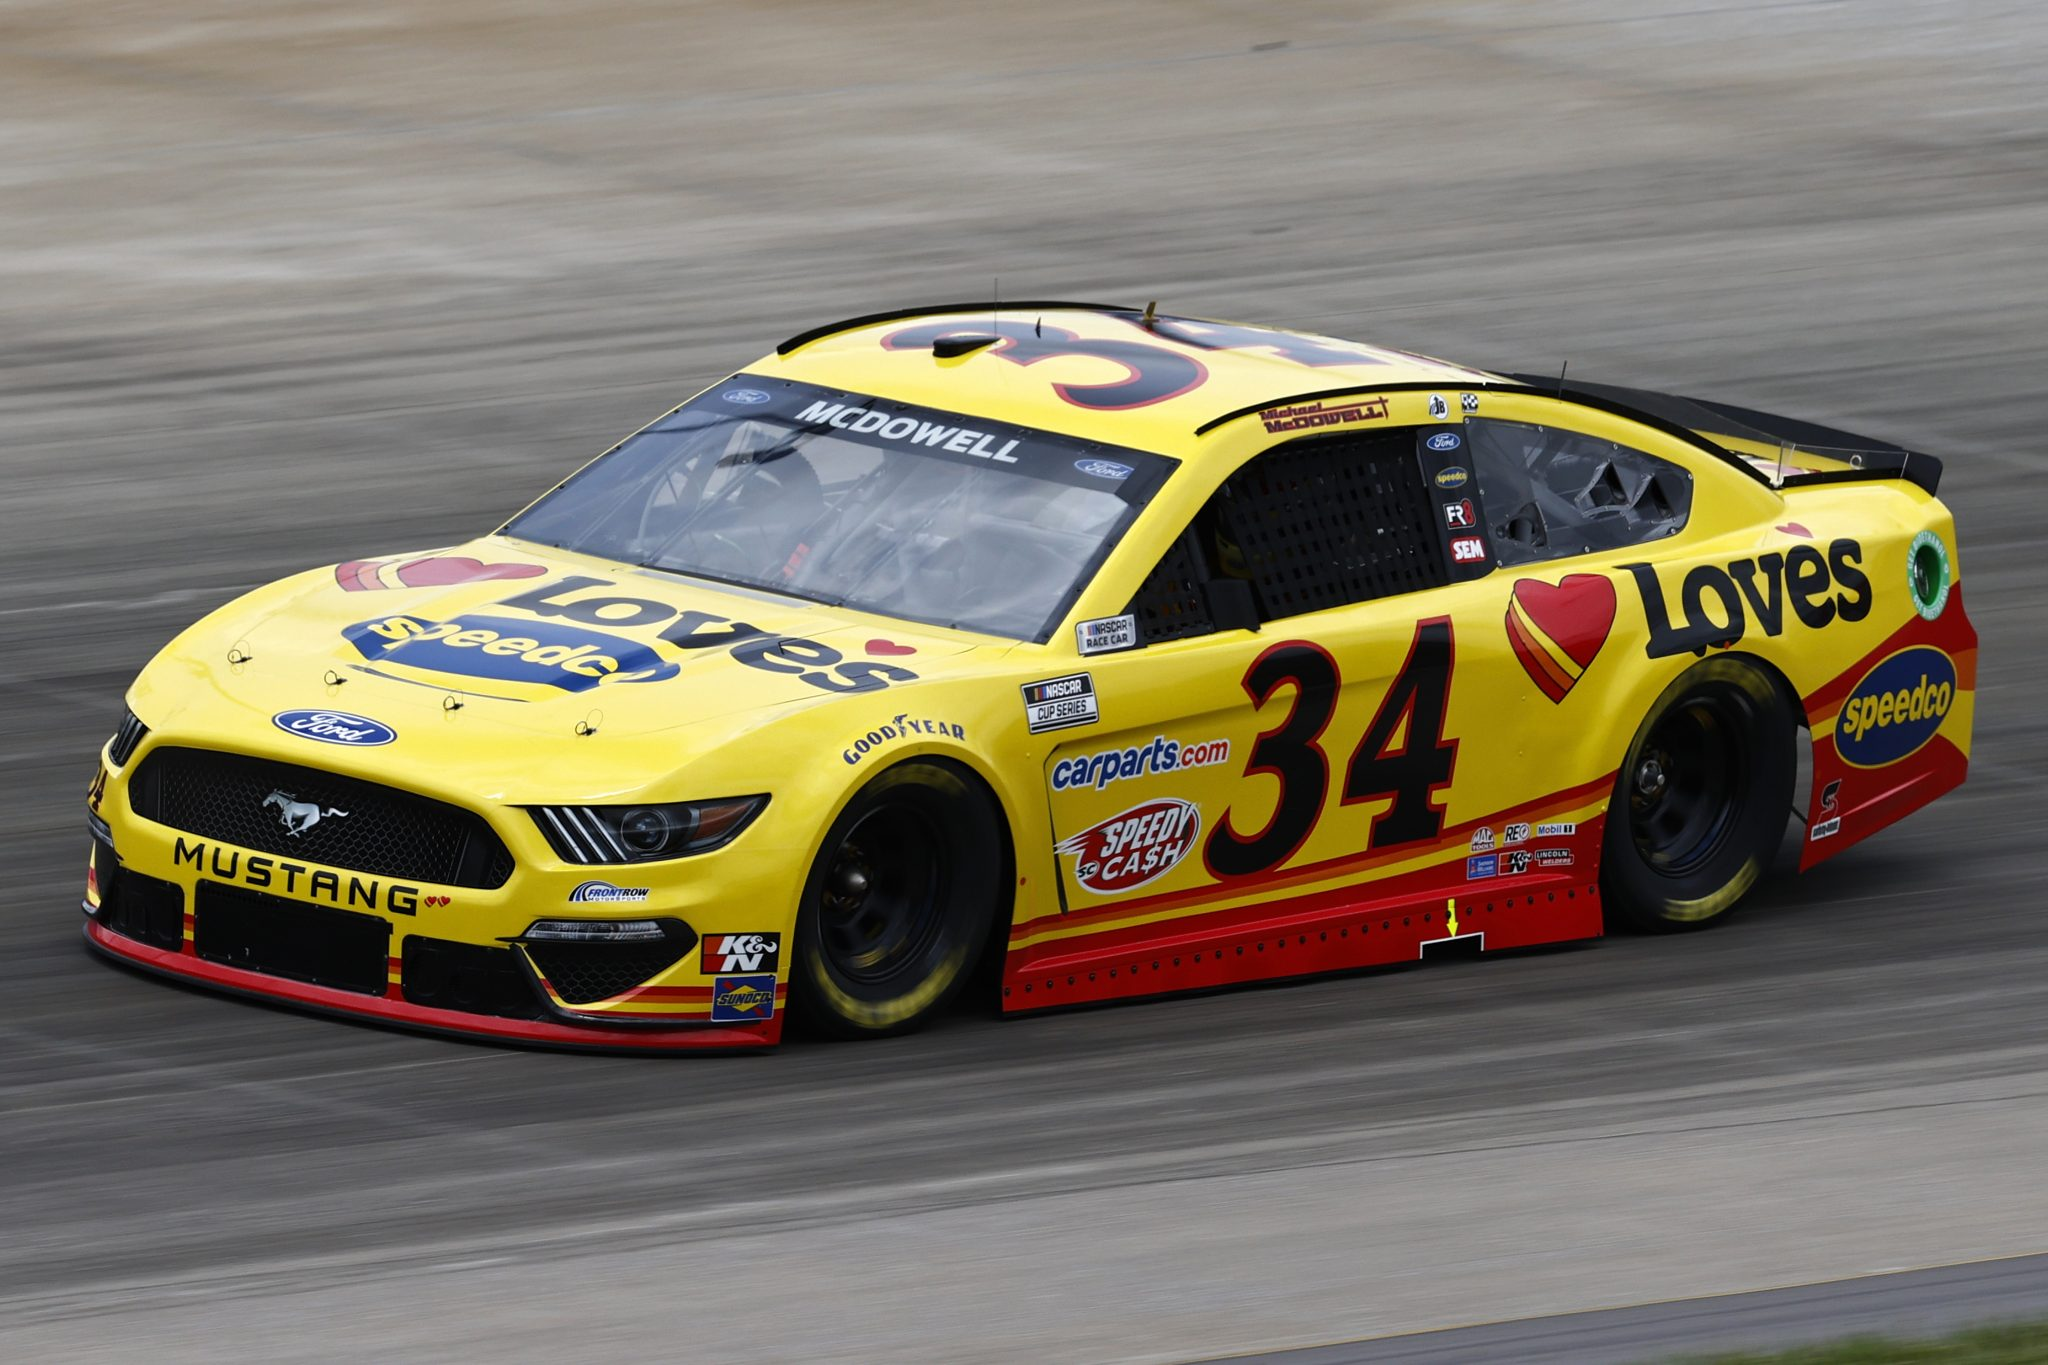 LEBANON, TENNESSEE - JUNE 19: Michael McDowell, driver of the #34 Love's Travel Stops Ford, drives during practice for the NASCAR Cup Series Ally 400 at Nashville Superspeedway on June 19, 2021 in Lebanon, Tennessee. (Photo by Jared C. Tilton/Getty Images) | Getty Images